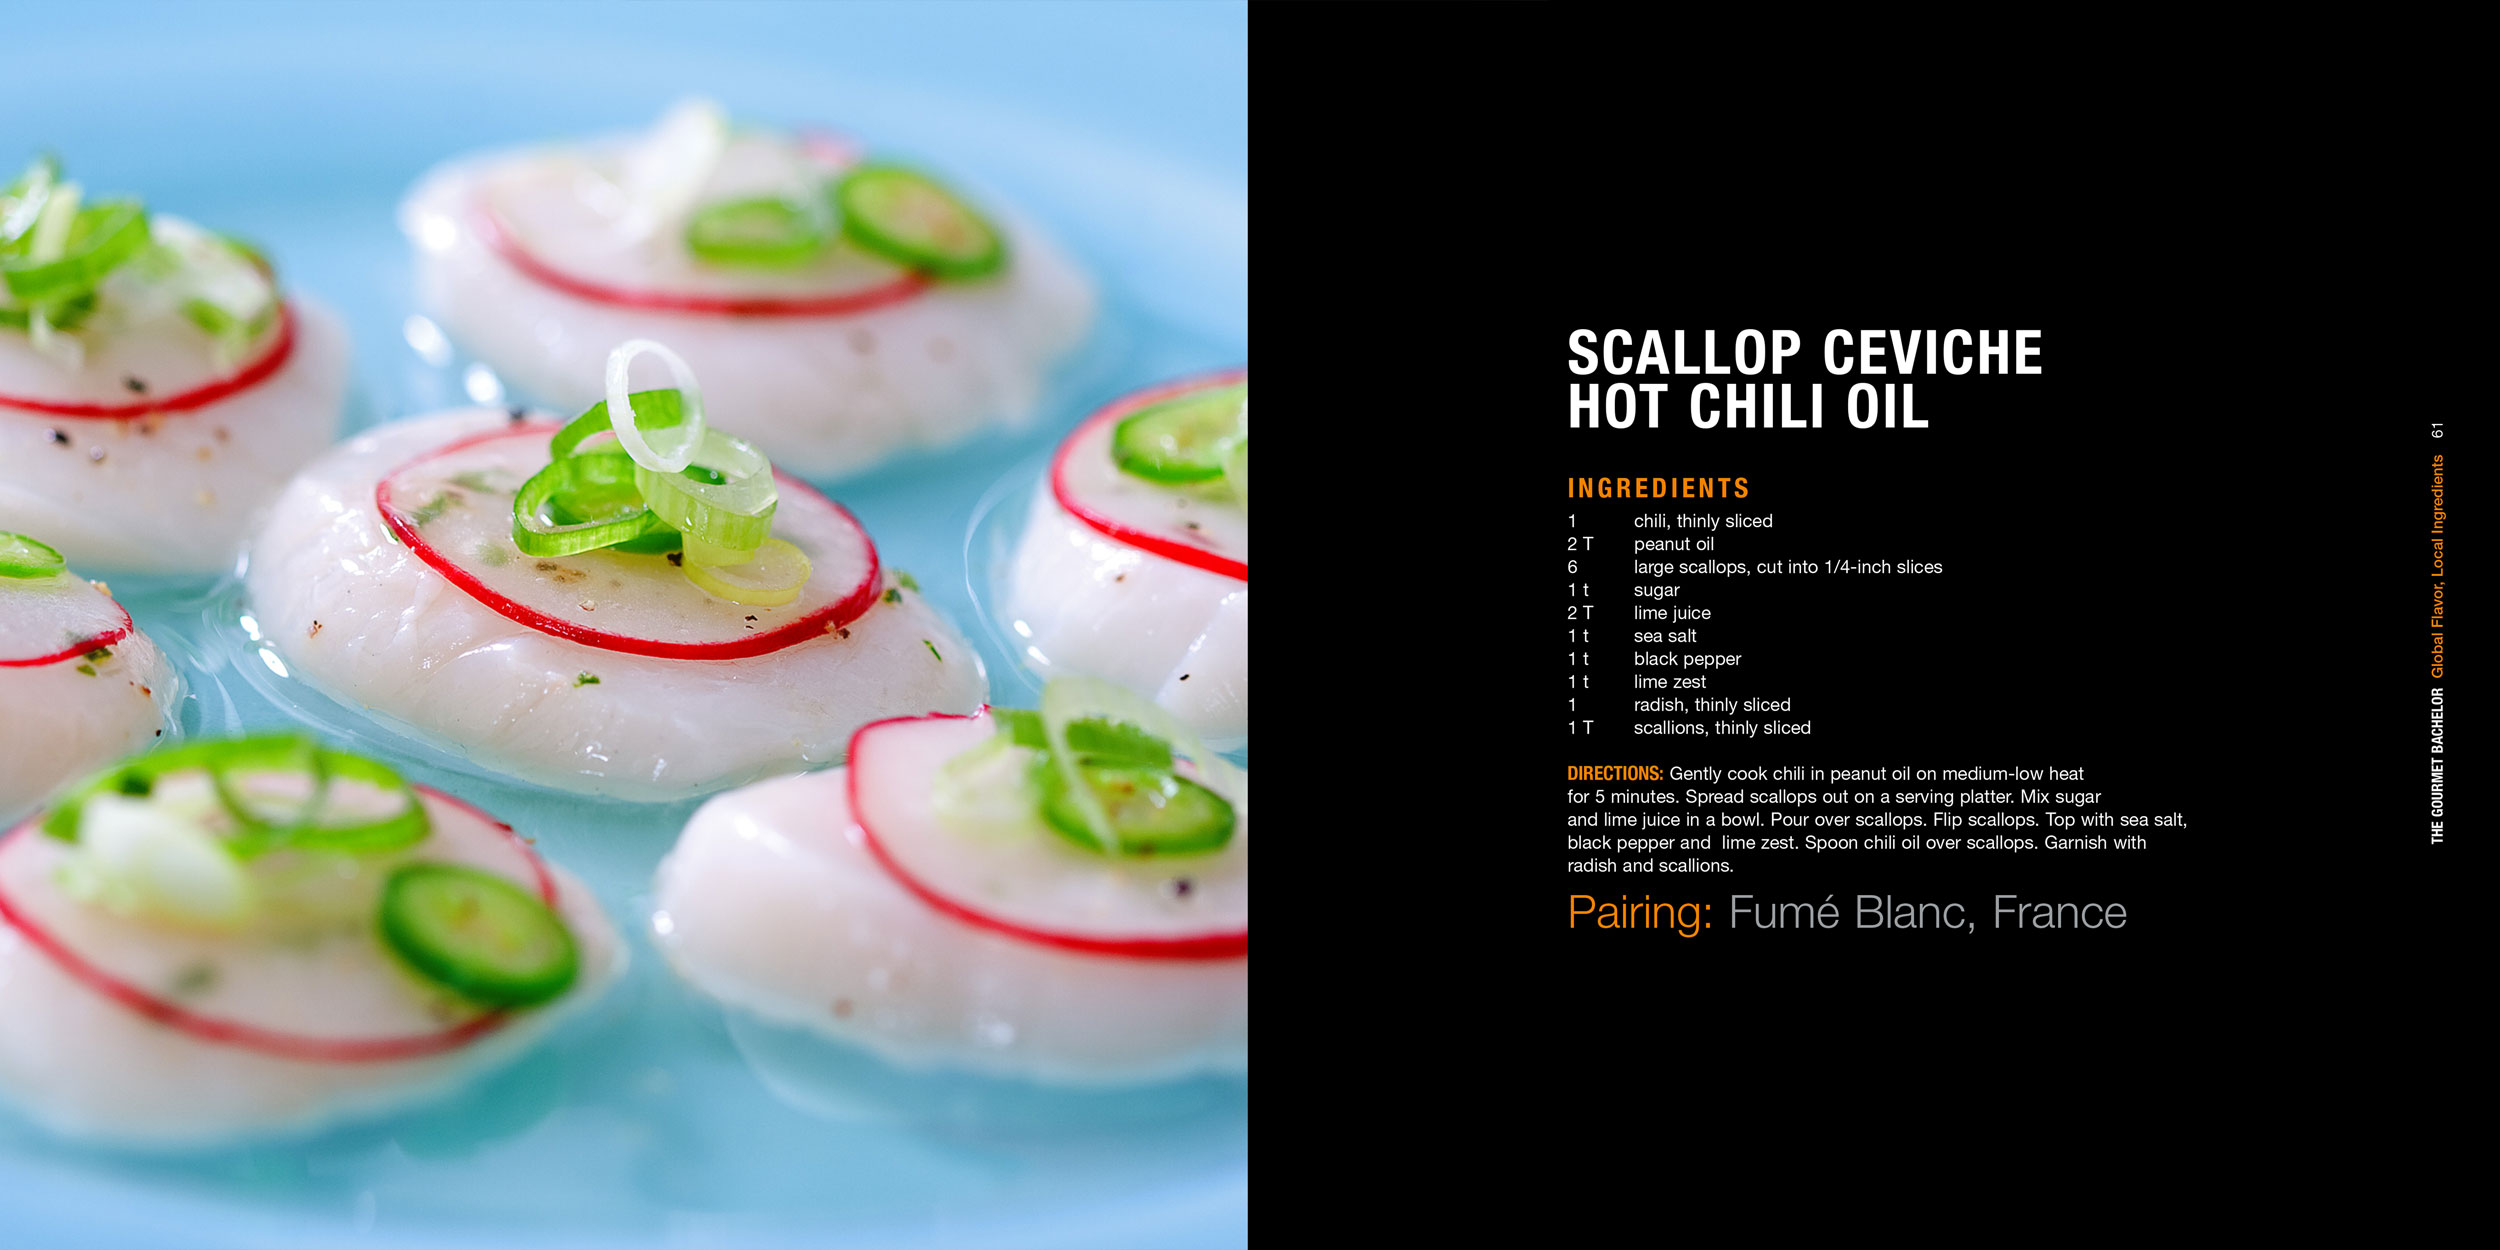 TGB_Scallop_Ceviche_Hot_Chili_Oil